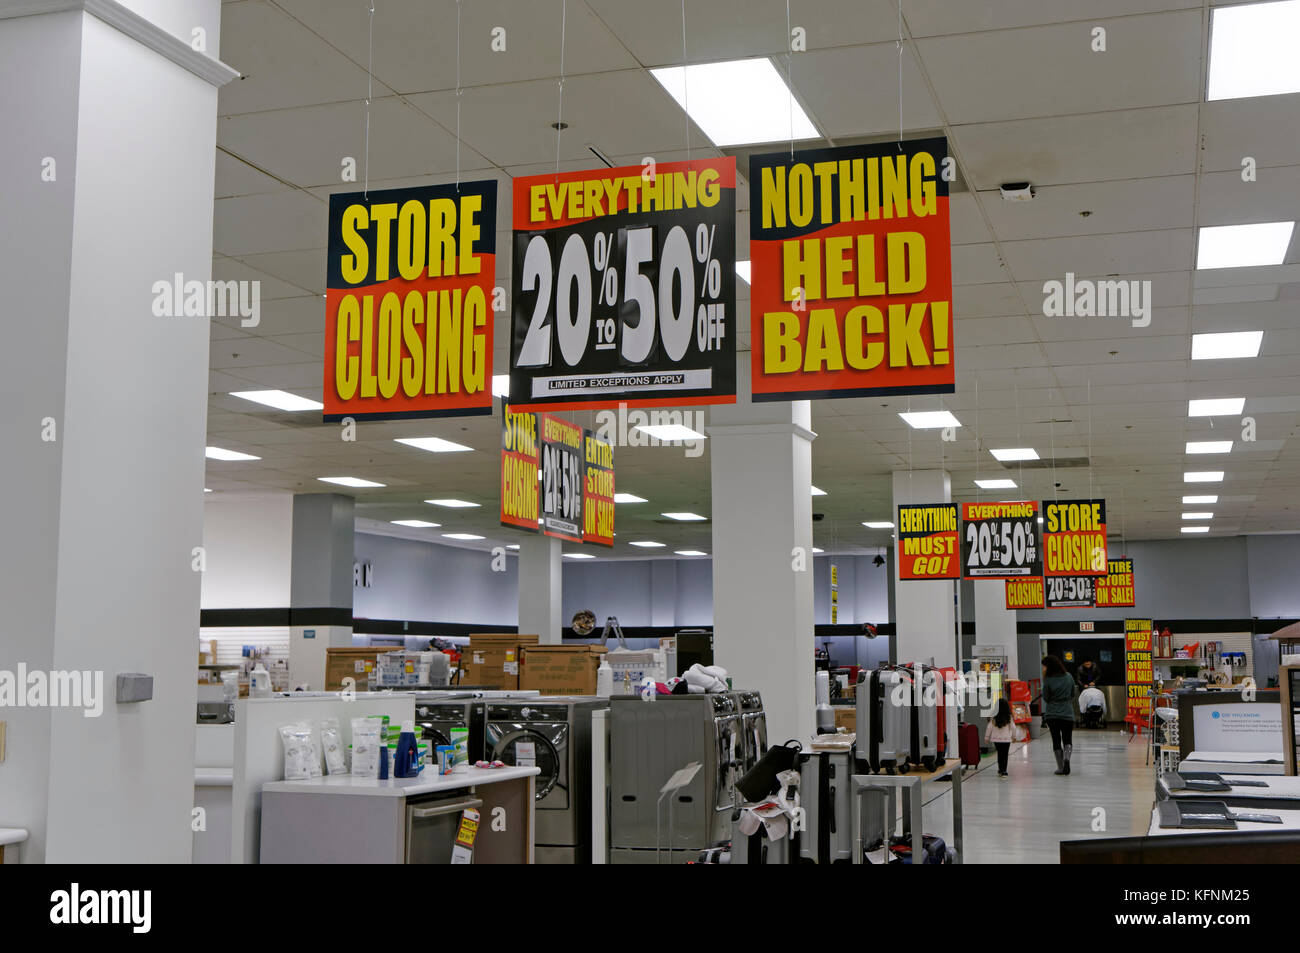 Store closing sale sign 2017 inside Sears Canada department store In Capilano Mall, North Vancouver, BC, Canada - Stock Image